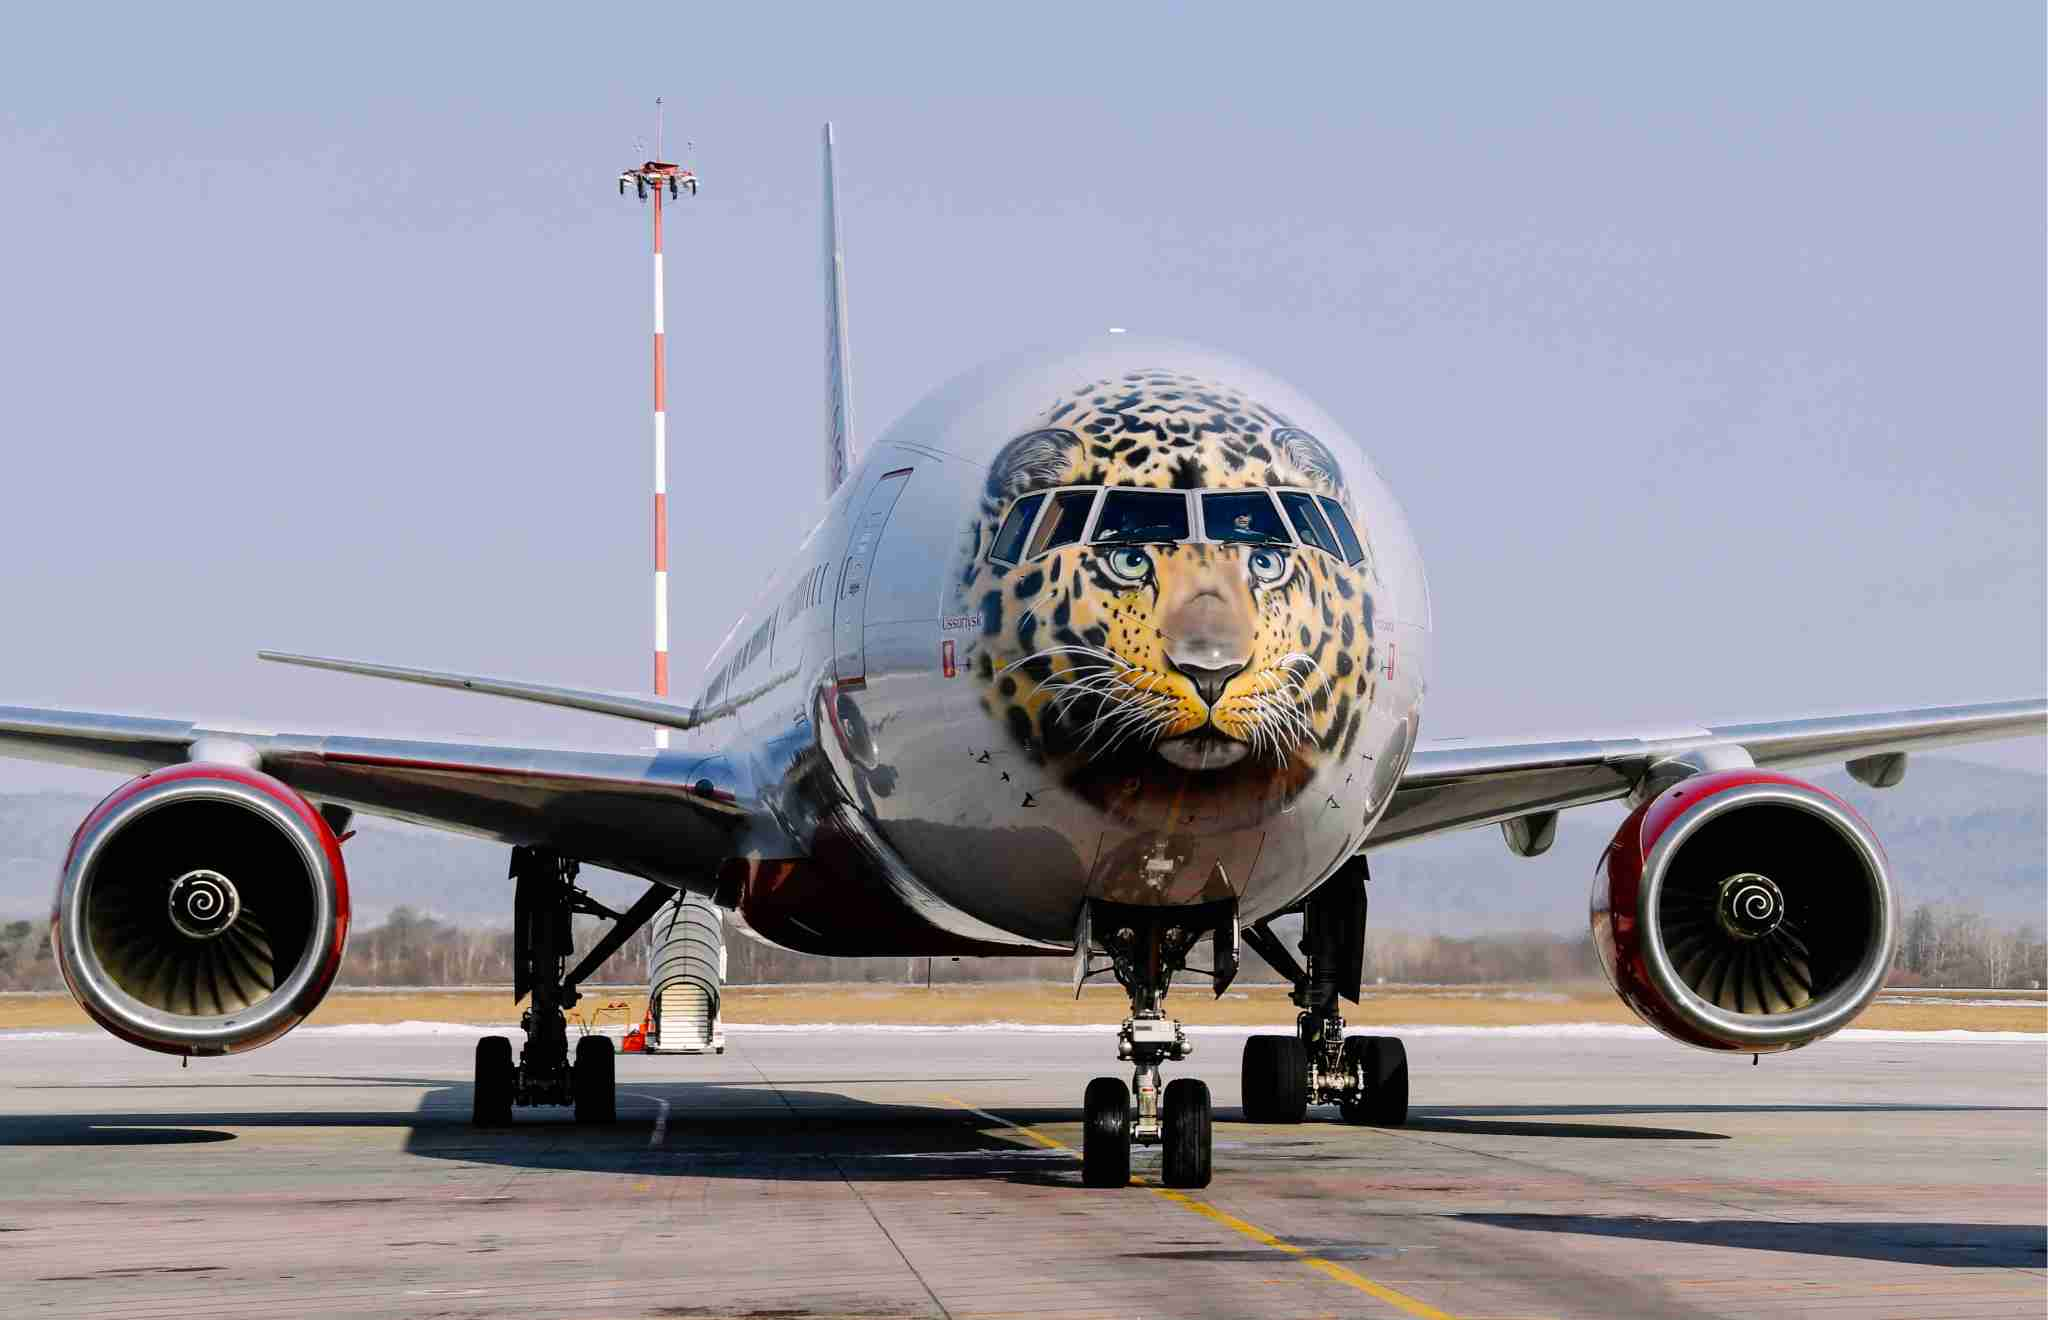 VLADIVOSTOK, RUSSIA - MARCH 3, 2017: Rossiya Airlines Boeing 777-300 with a face of the endangered Amur leopard painted on its nose cone arrives at Vladivostok International Airport. Yuri Smityuk/TASS (Photo by Yuri SmityukTASS via Getty Images)